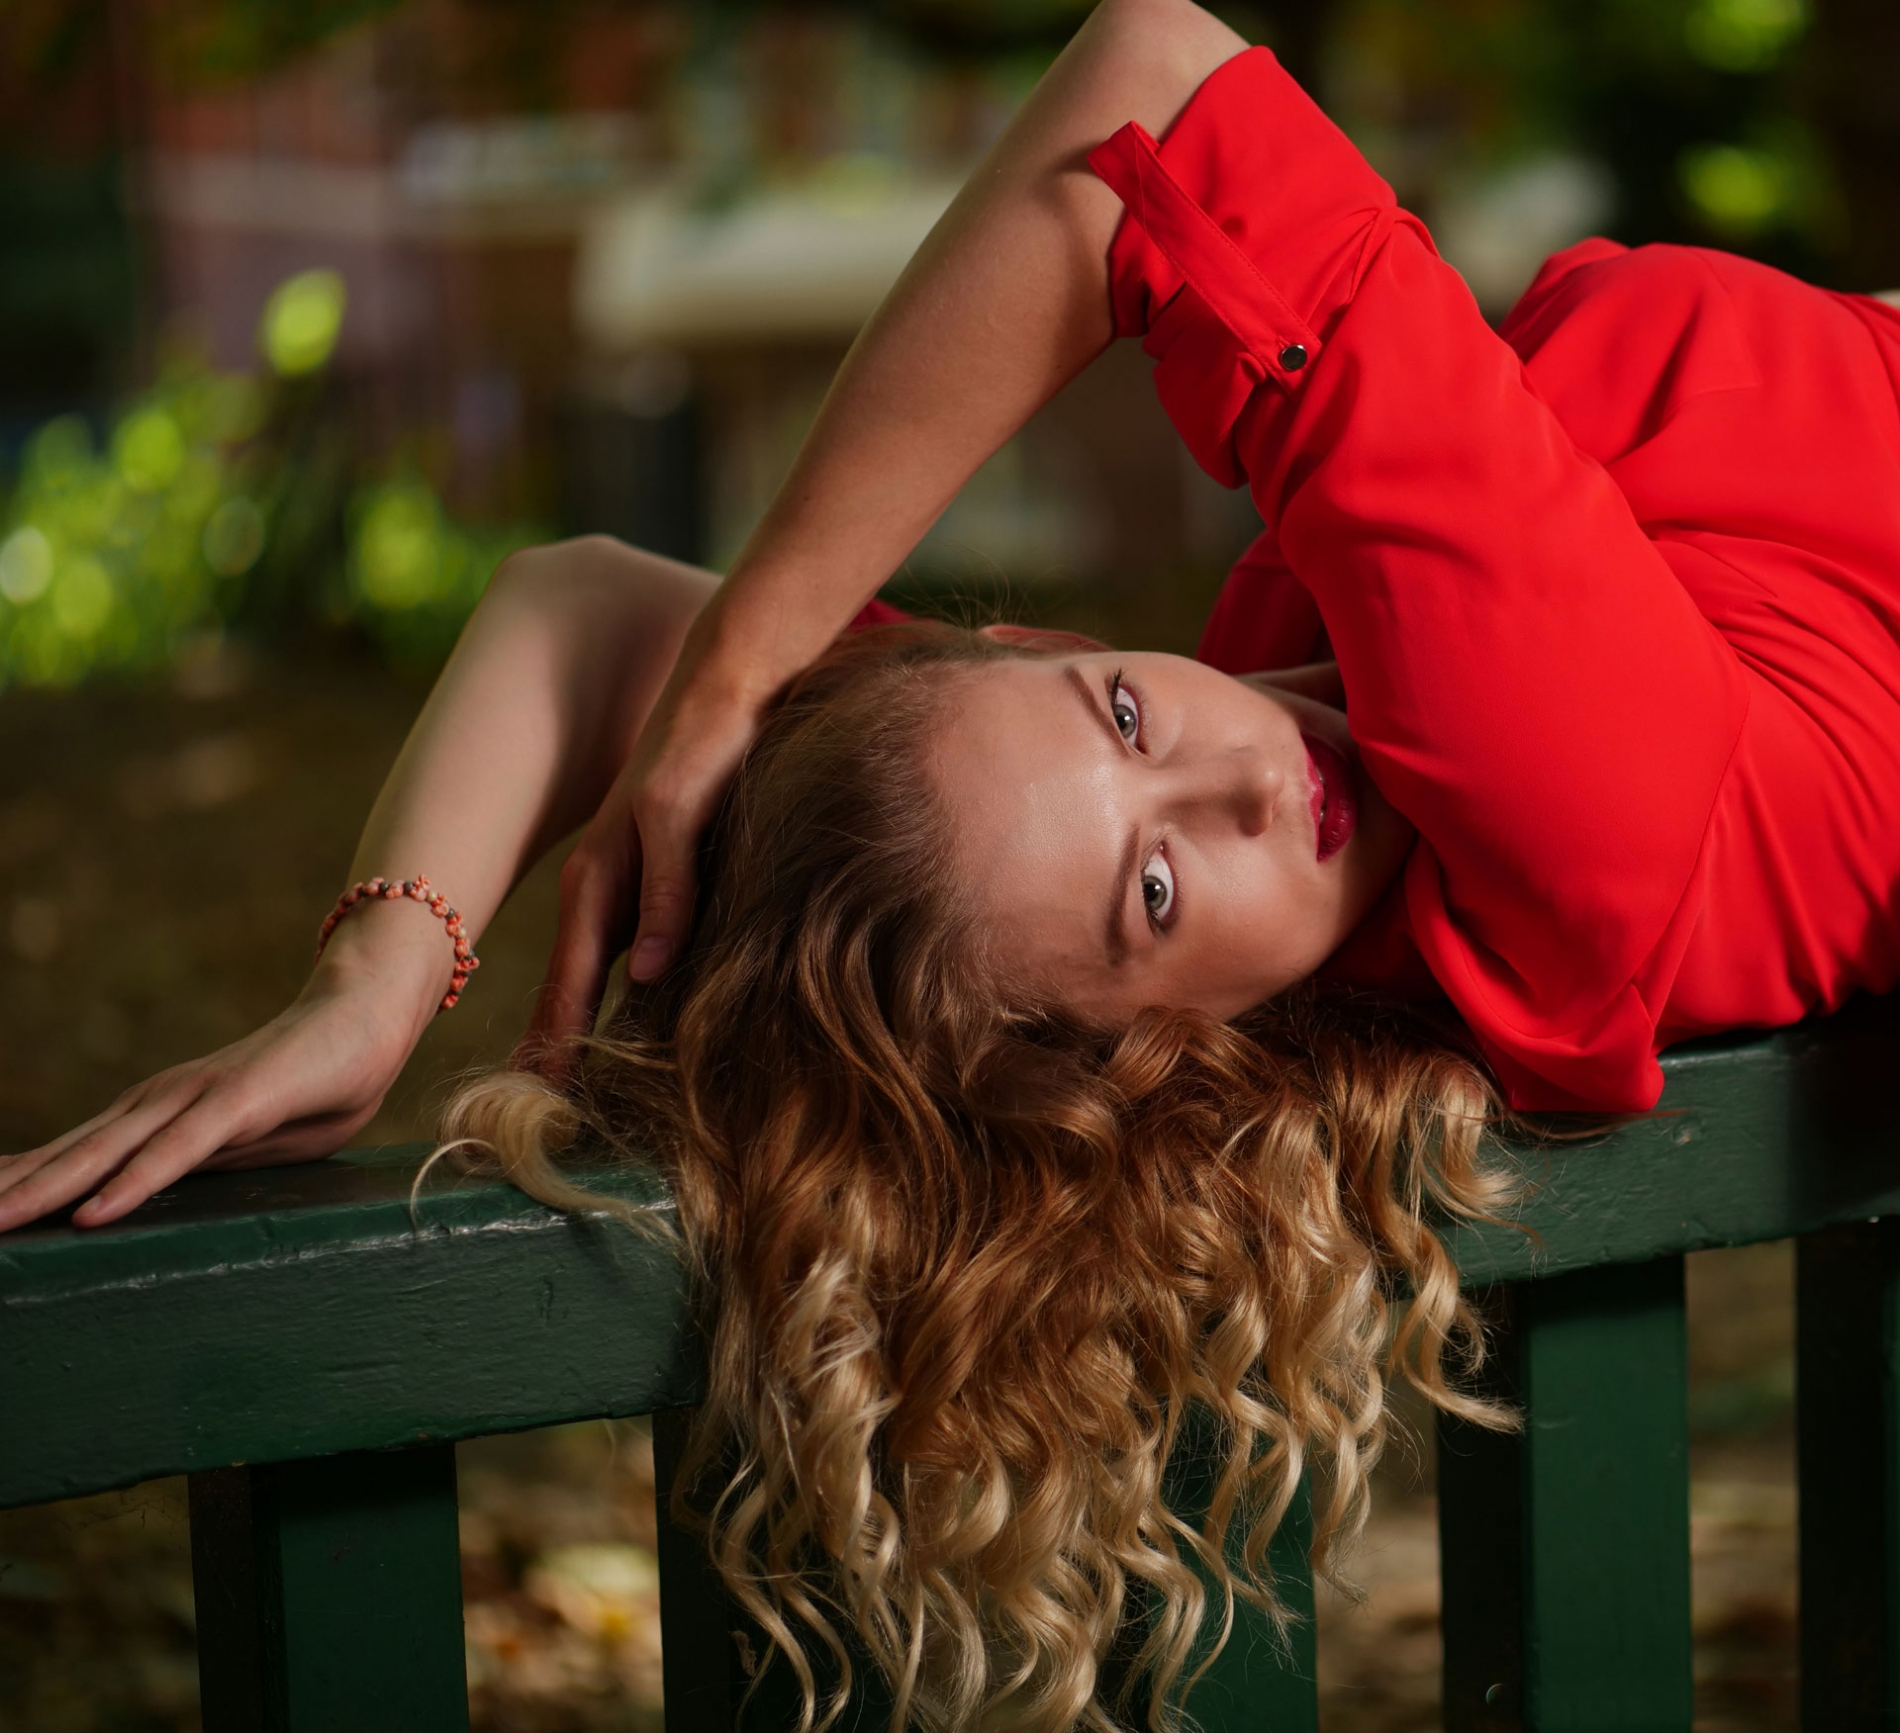 Girl-in-red-on-bench